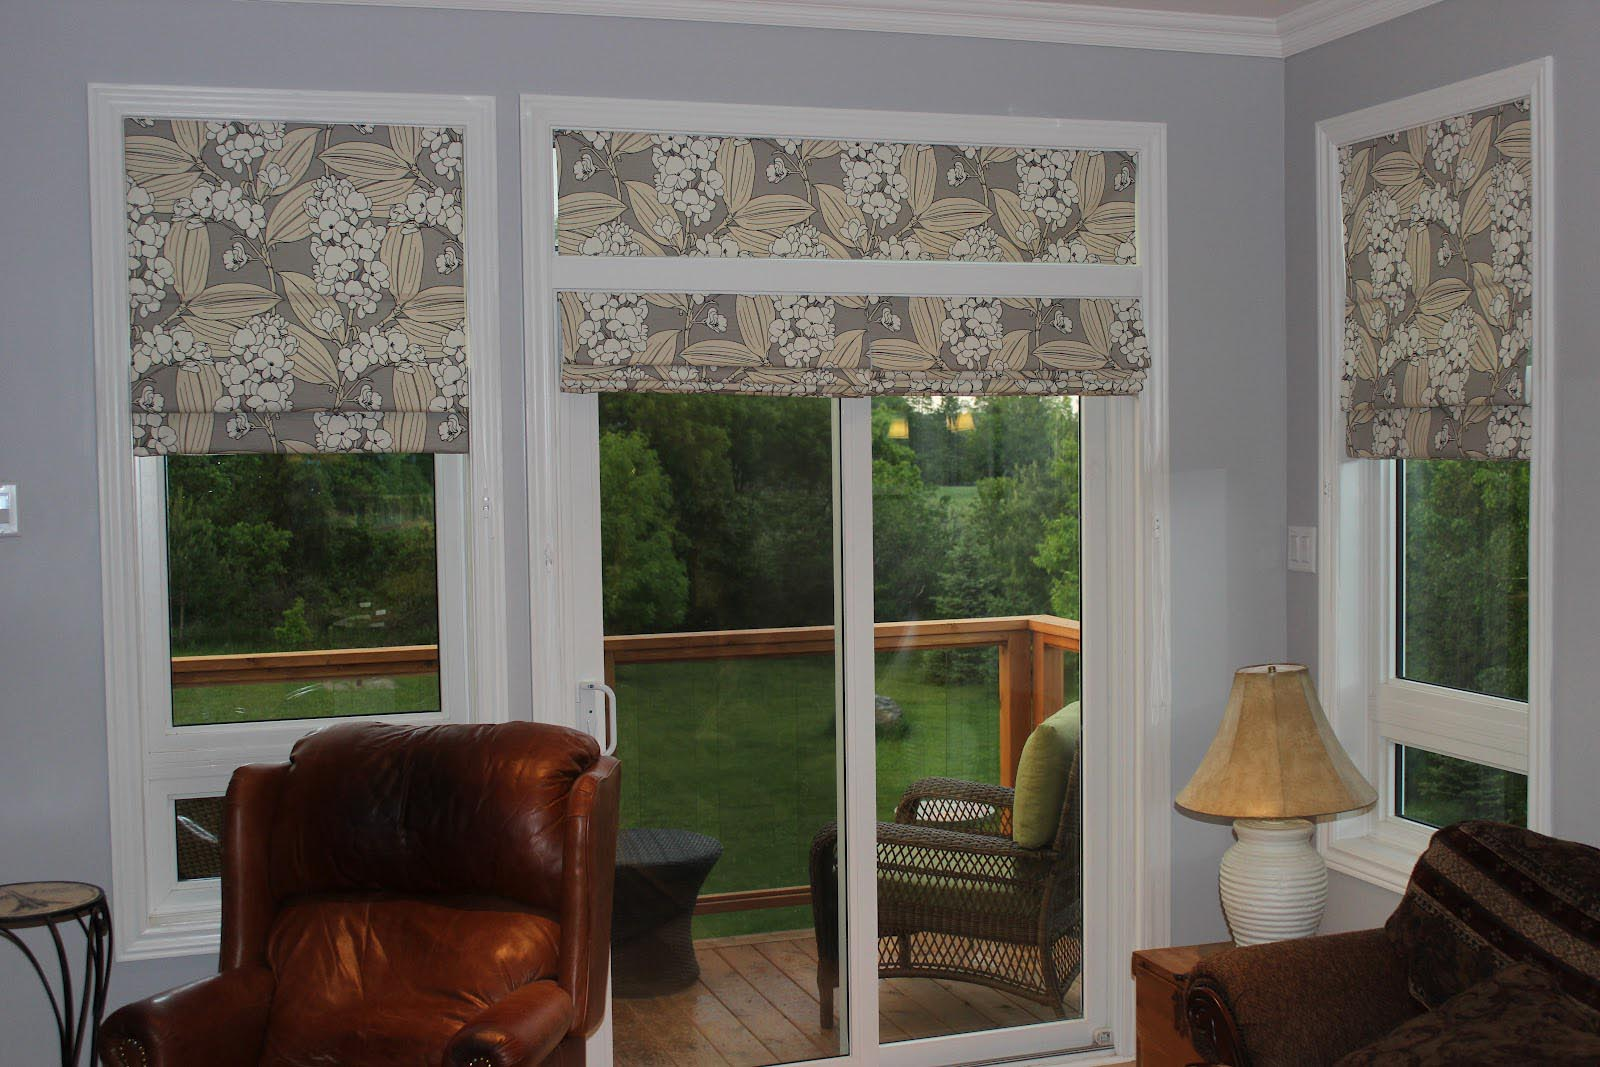 Roman shades for patio doors window treatments design ideas Doors for patio